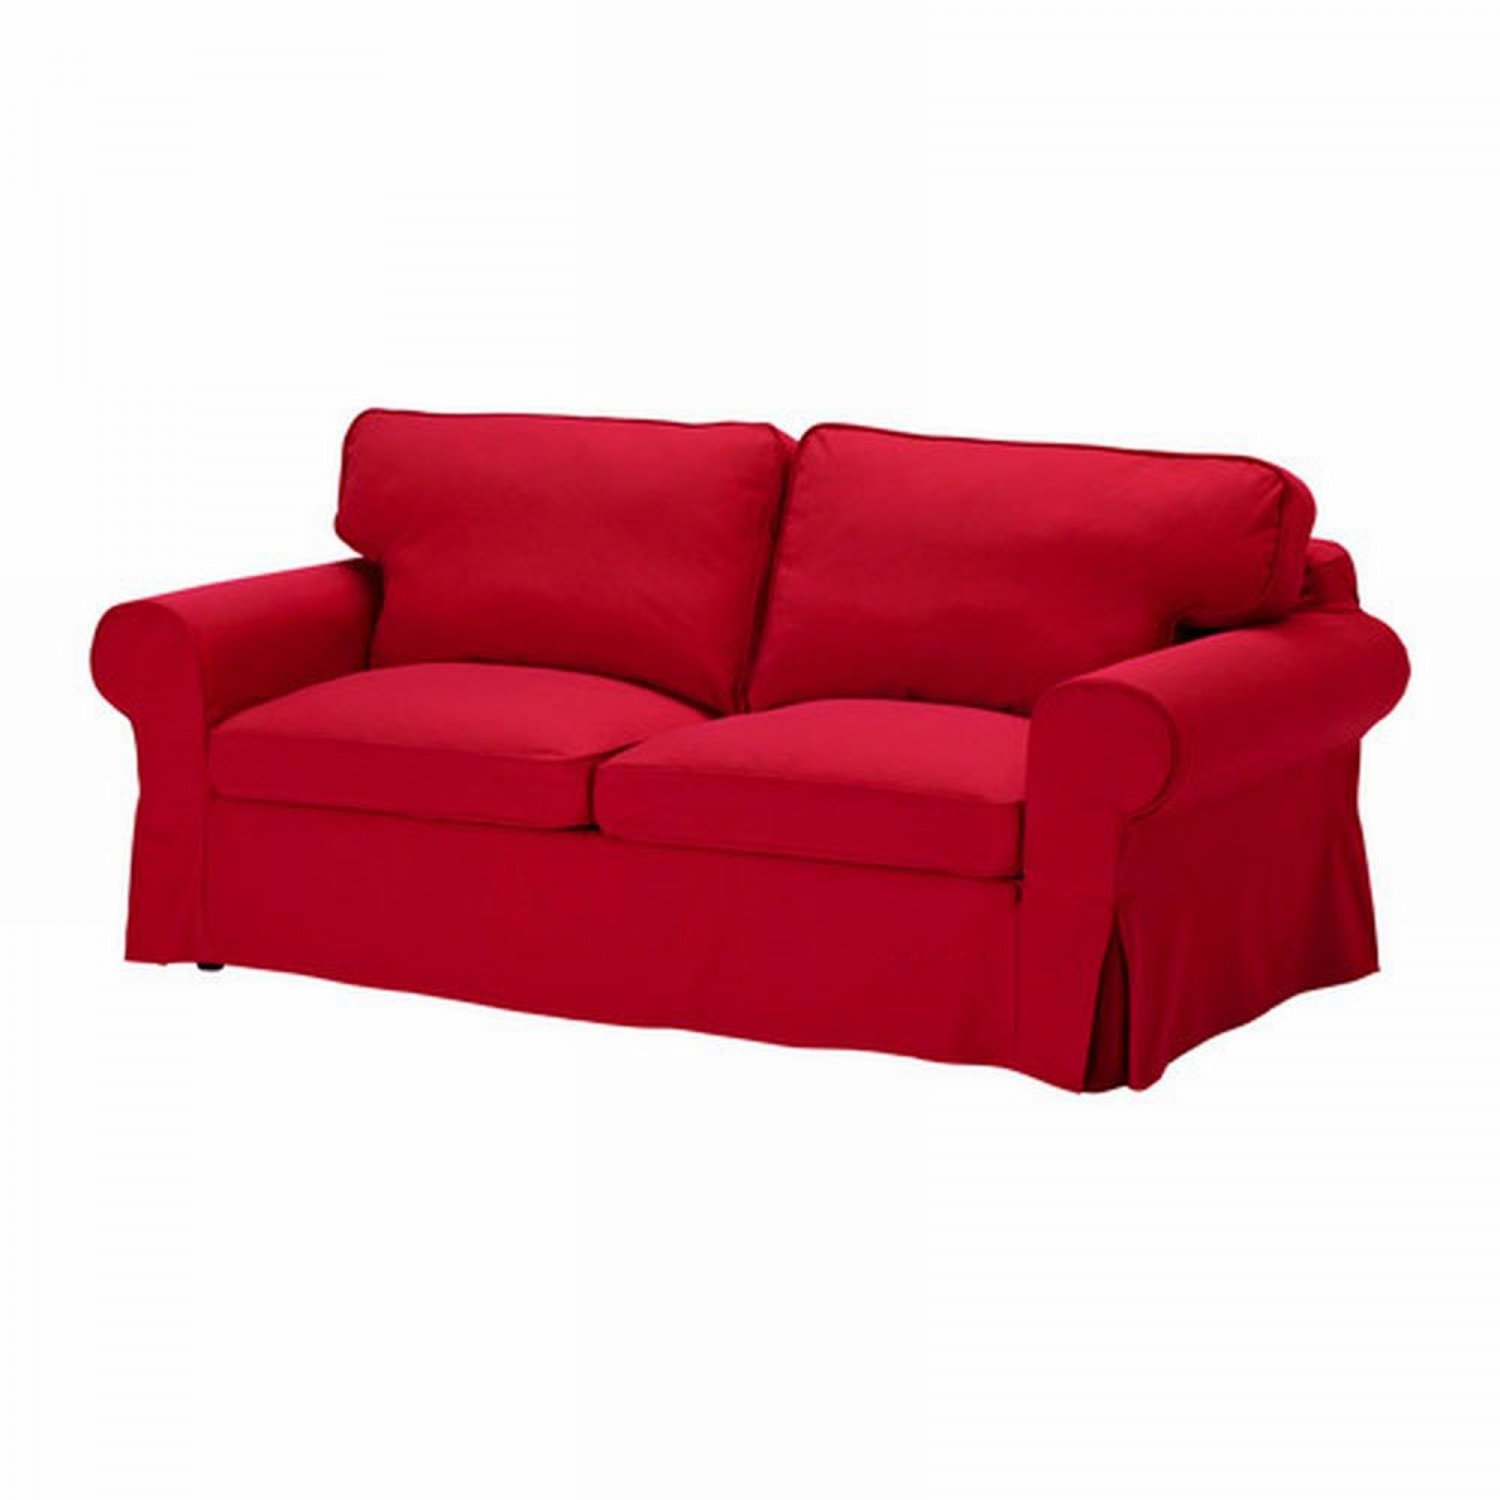 Ikea ektorp sofa bed slipcover cover idemo red sofabed cvr Loveseat sofa bed